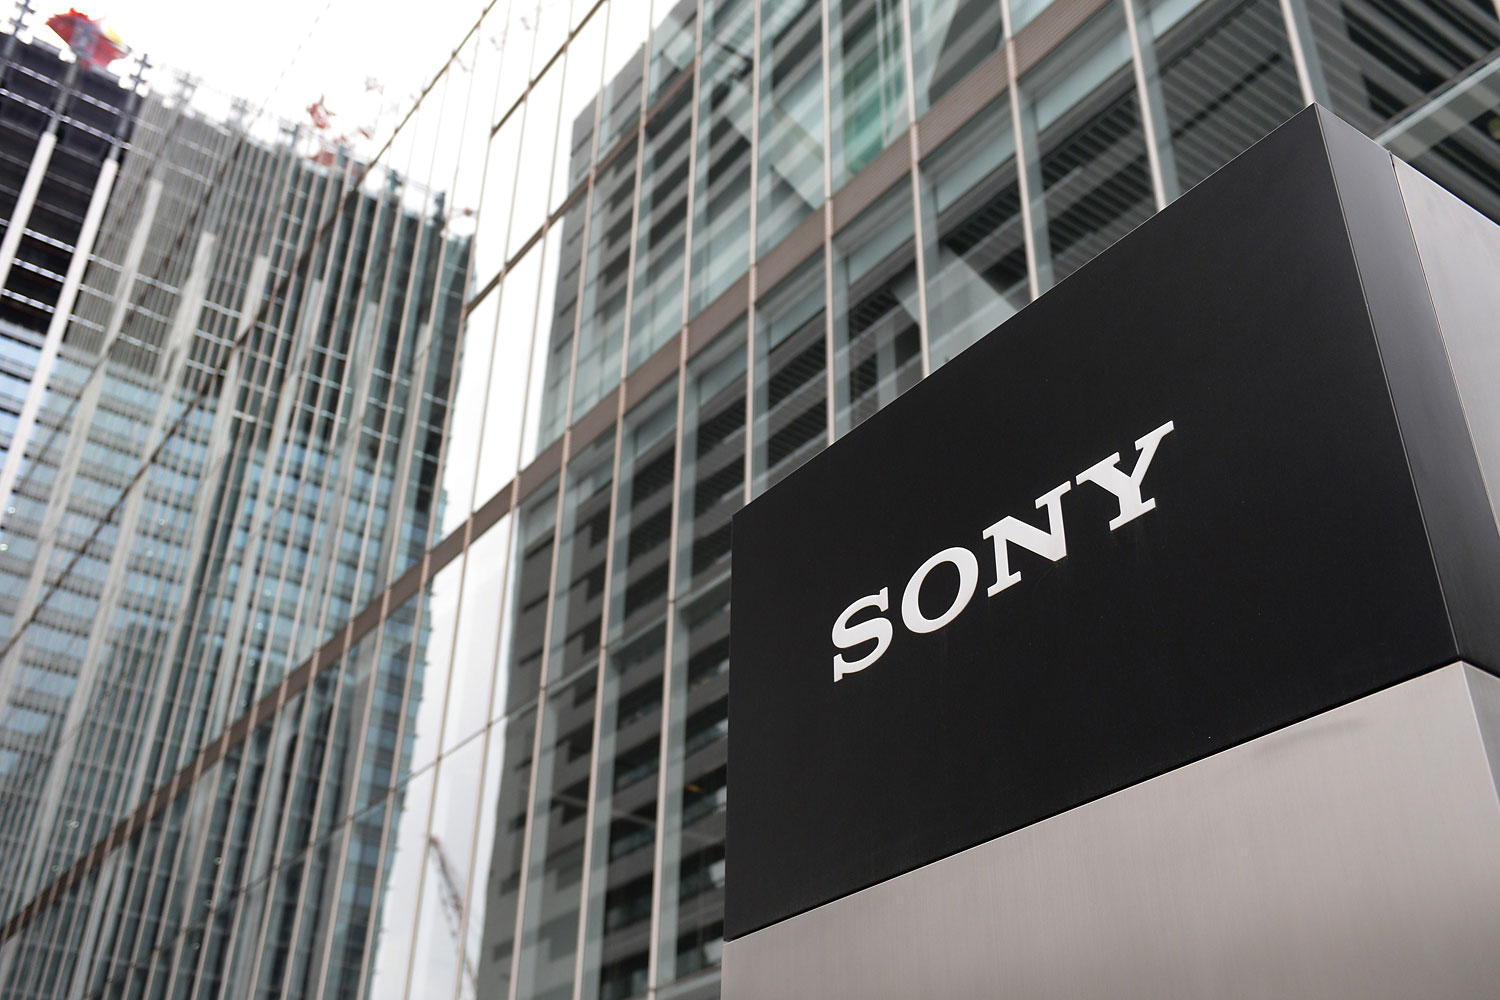 A logo of Japan's Sony Corporation is displayed at its headquarters in Tokyo on May 14, 2014.